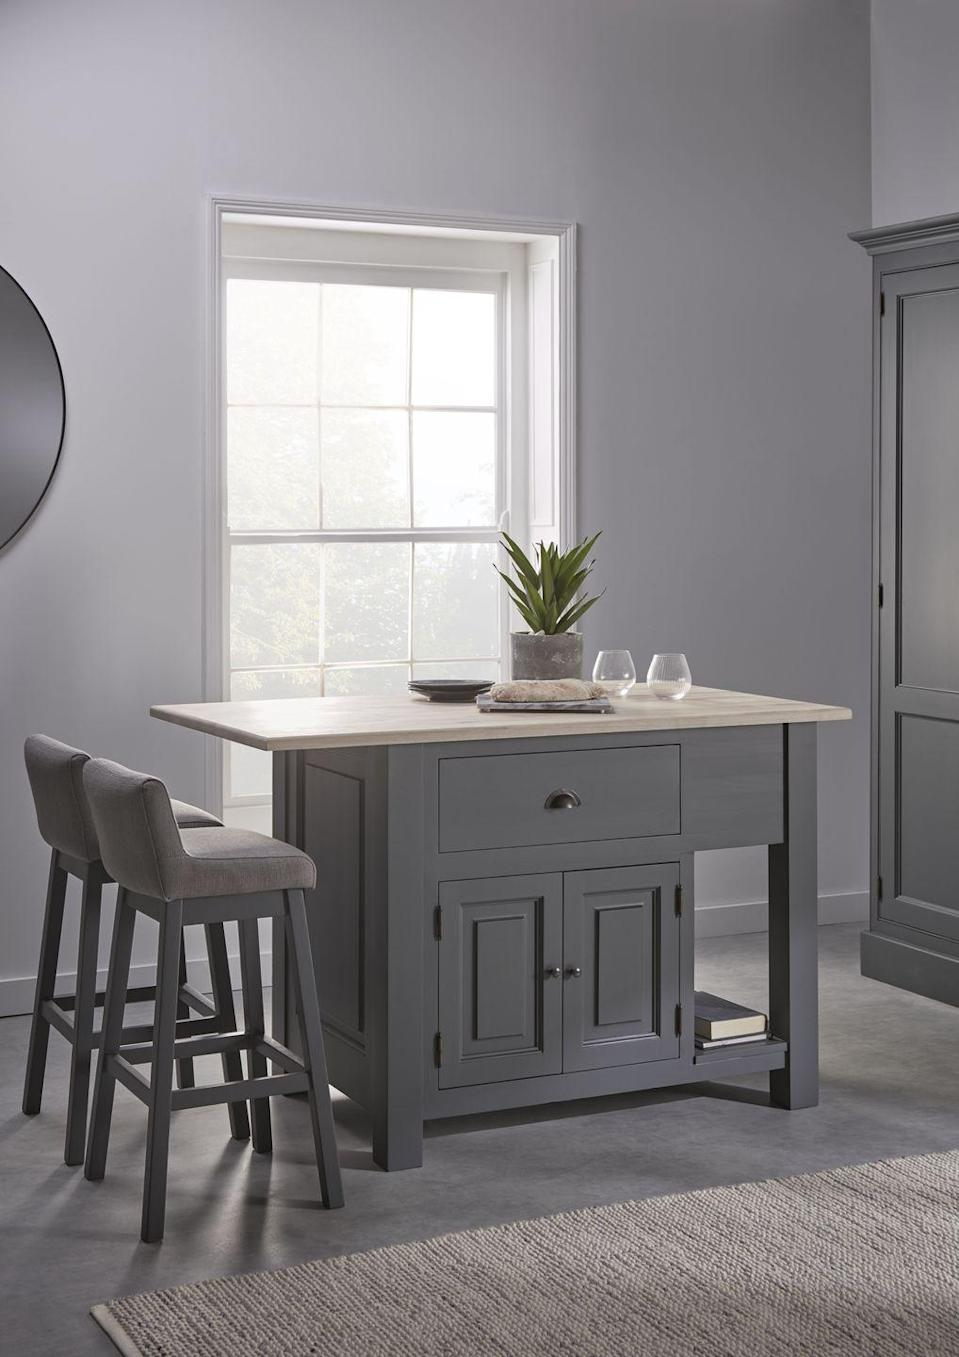 """<p>No space? No problem! You don't need a massive kitchen for an island. For a small kitchen island, there are tons of compact styles available, including this cool grey design from Cox & Cox. It provides space to sit and it's brilliant for providing extra storage for cookbooks, plants and utensils. </p><p>• Mette Island Unit, £1,375, from <a href=""""https://go.redirectingat.com?id=127X1599956&url=https%3A%2F%2Fwww.coxandcox.co.uk%2Fmette-island-unit%2F&sref=https%3A%2F%2Fwww.housebeautiful.com%2Fuk%2Fdecorate%2Fkitchen%2Fg36940747%2Fkitchen-island-ideas%2F"""" rel=""""nofollow noopener"""" target=""""_blank"""" data-ylk=""""slk:Cox & Cox"""" class=""""link rapid-noclick-resp"""">Cox & Cox</a> </p>"""